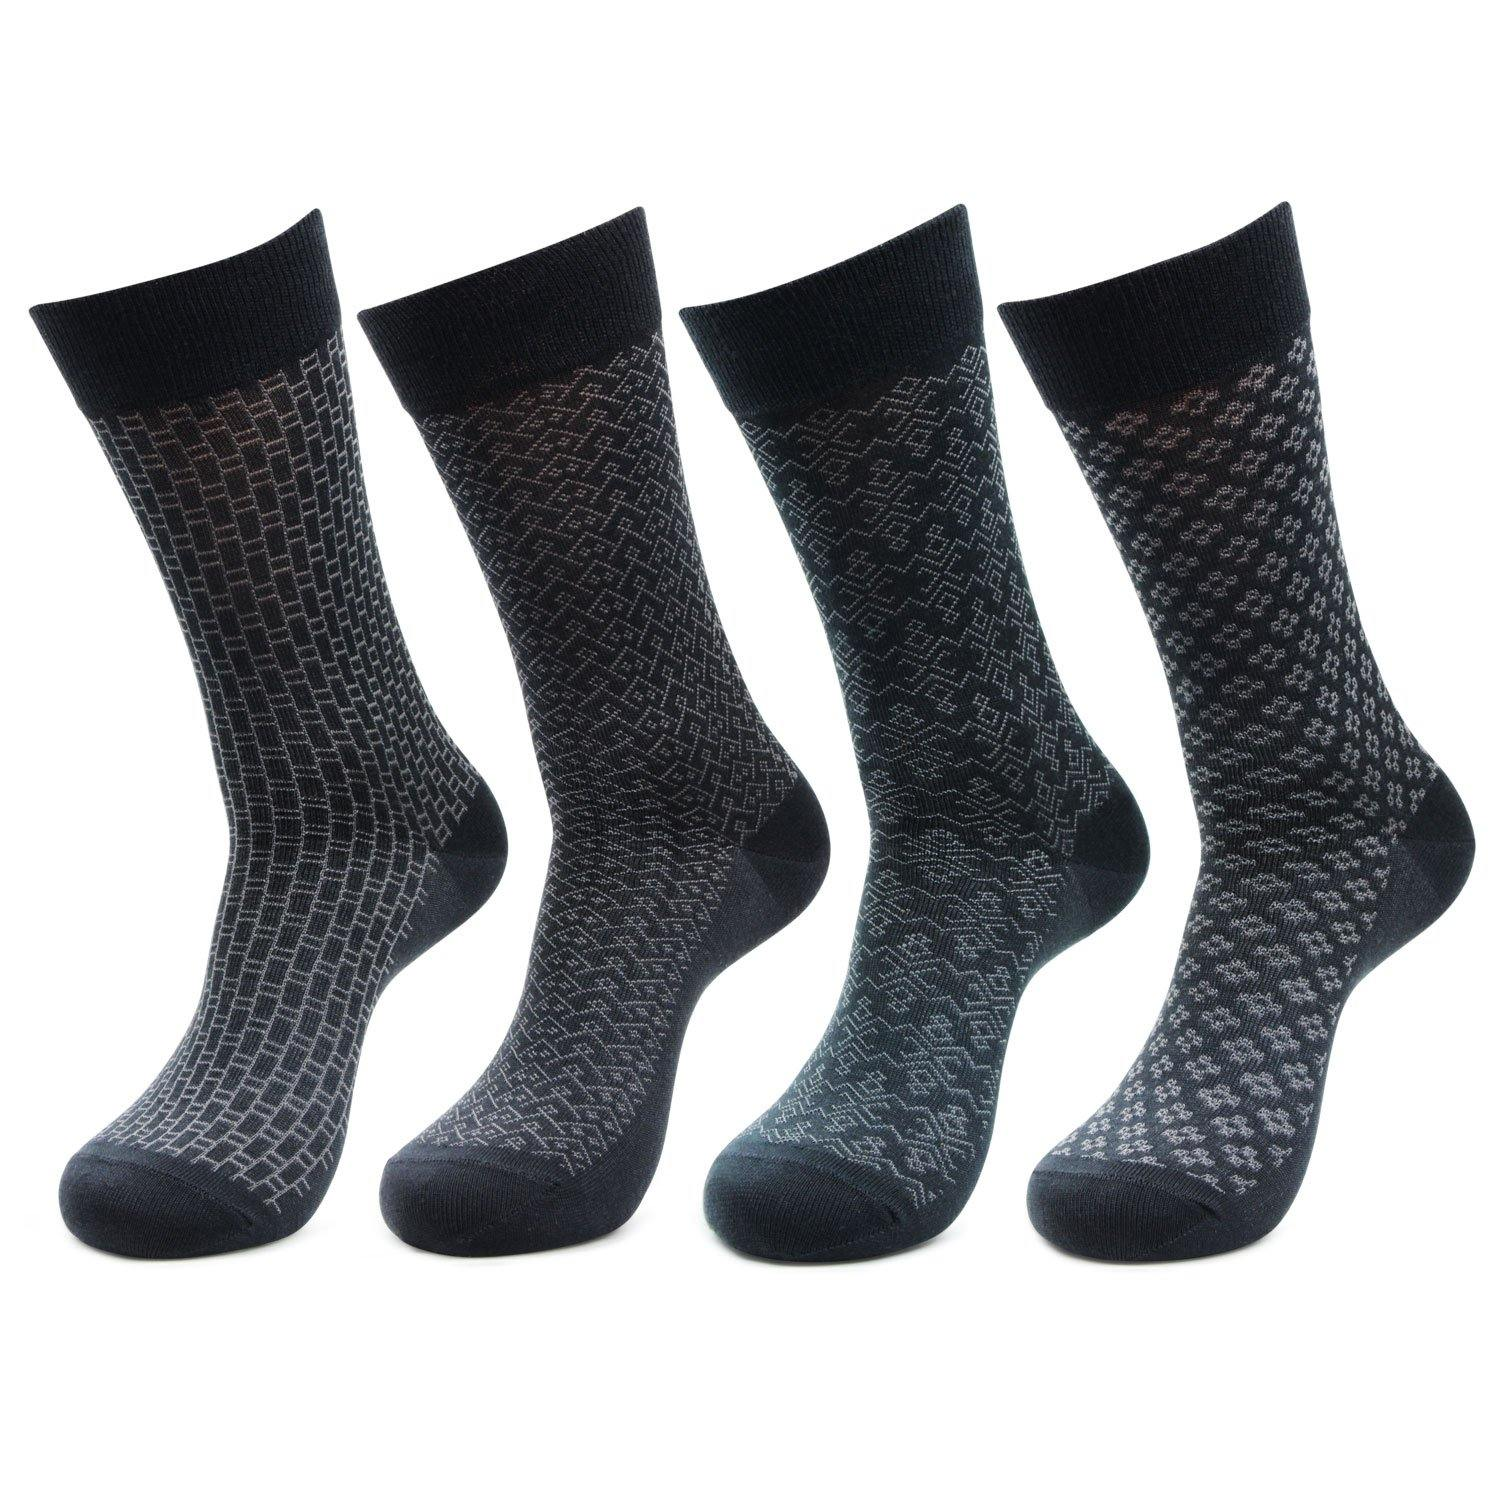 Men's Mercerized Self Design Formal Dress Socks- Pack of 4